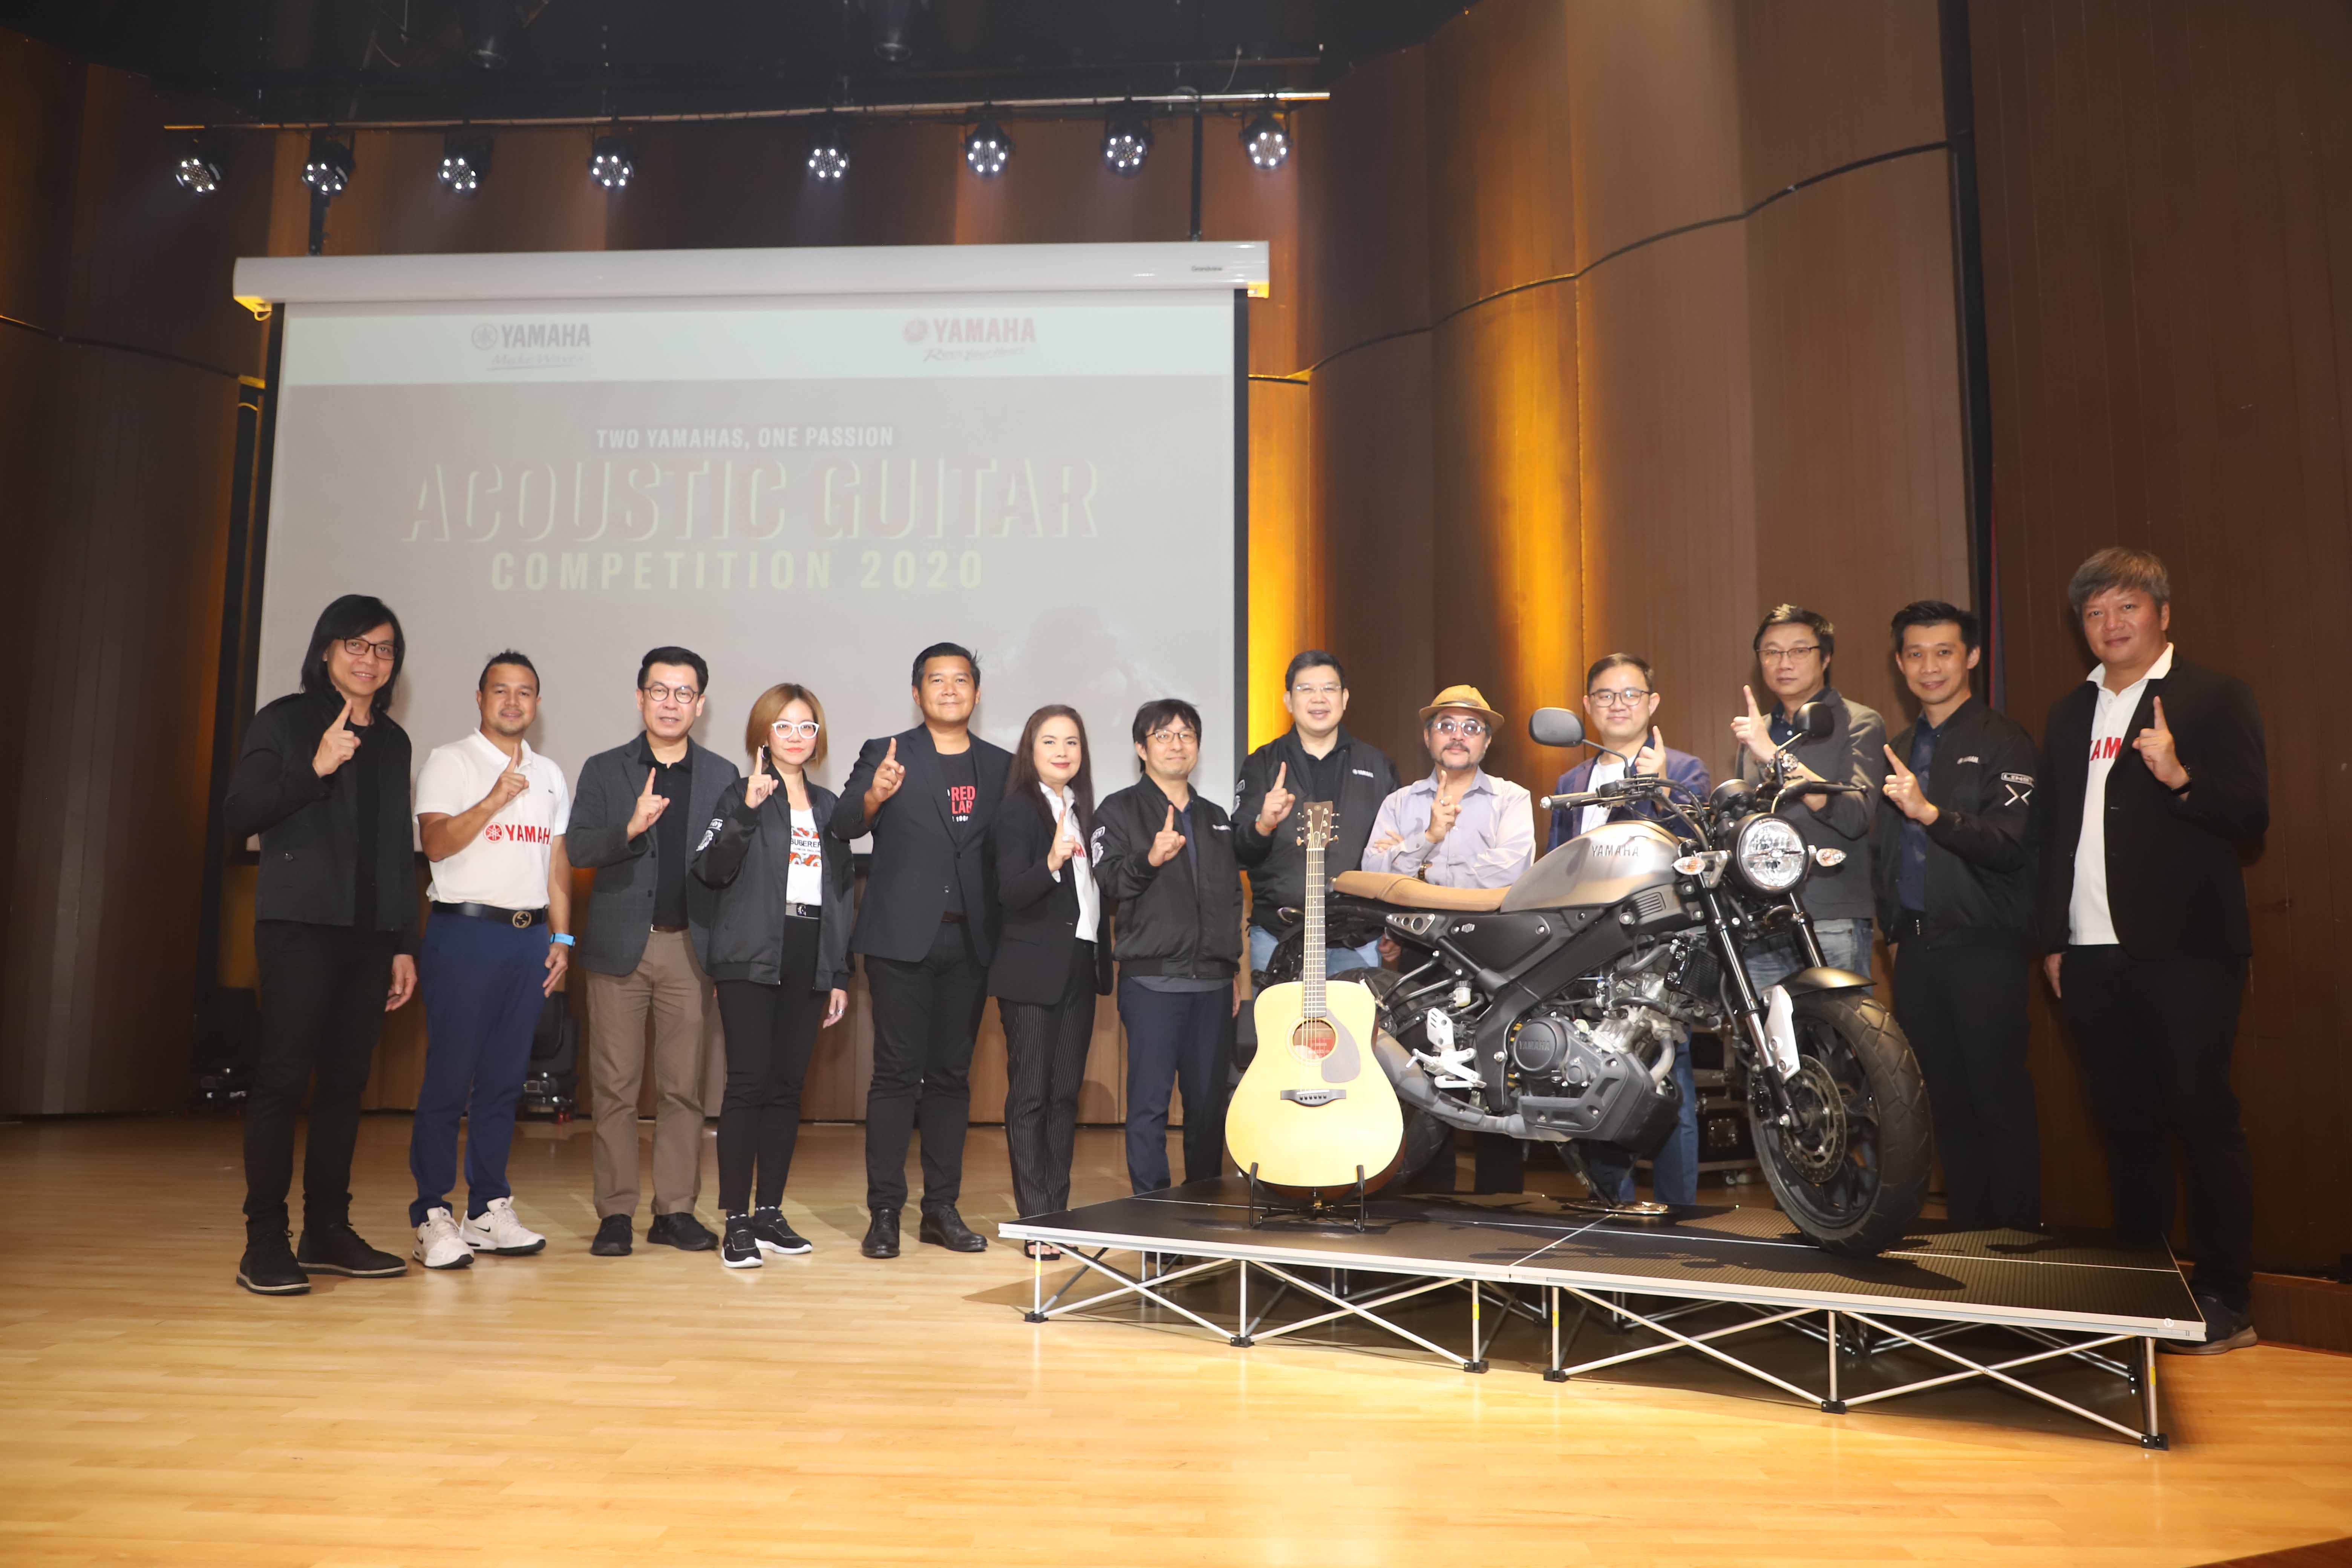 Thai Yamaha - TWO YAMAHAS, ONE PASSION ACOUSTIC GUITAR COMPETITION 2020